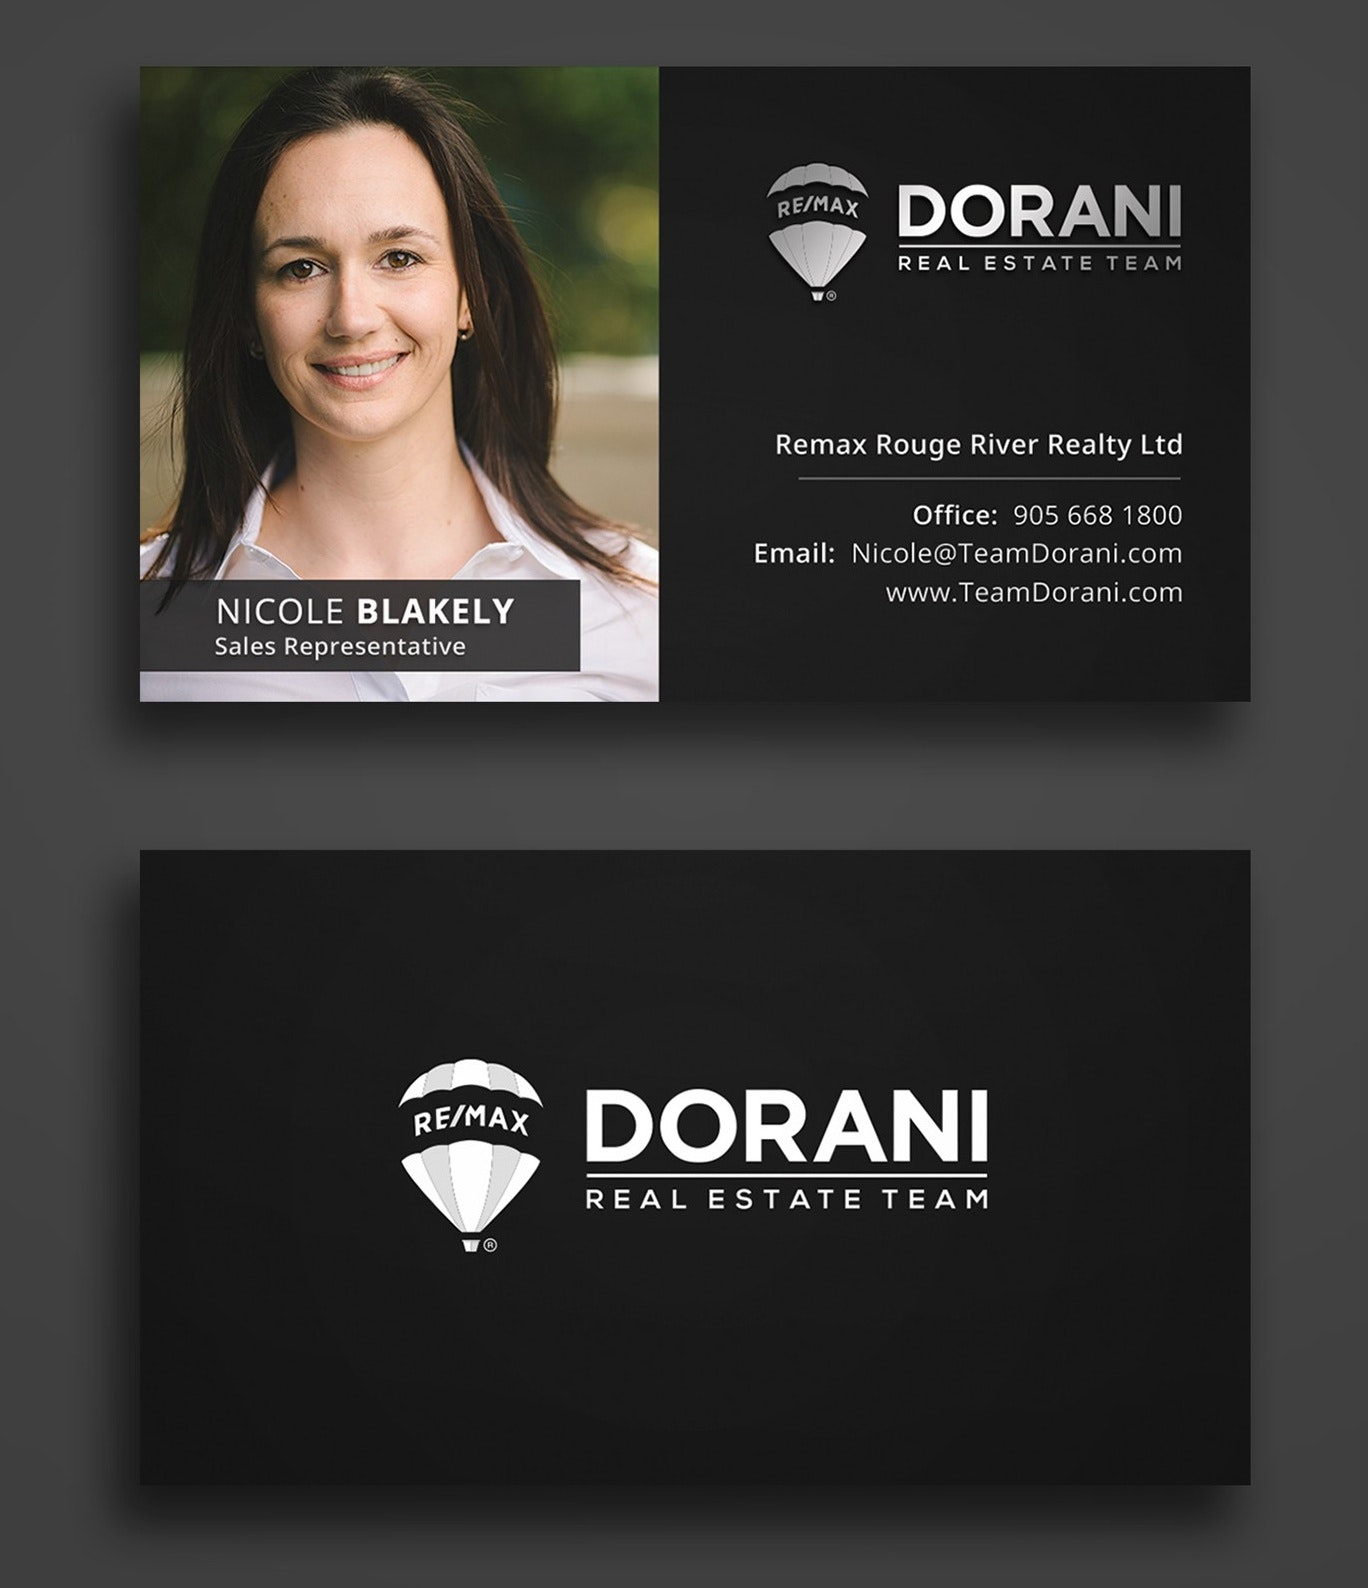 Dorani Real Estate Team